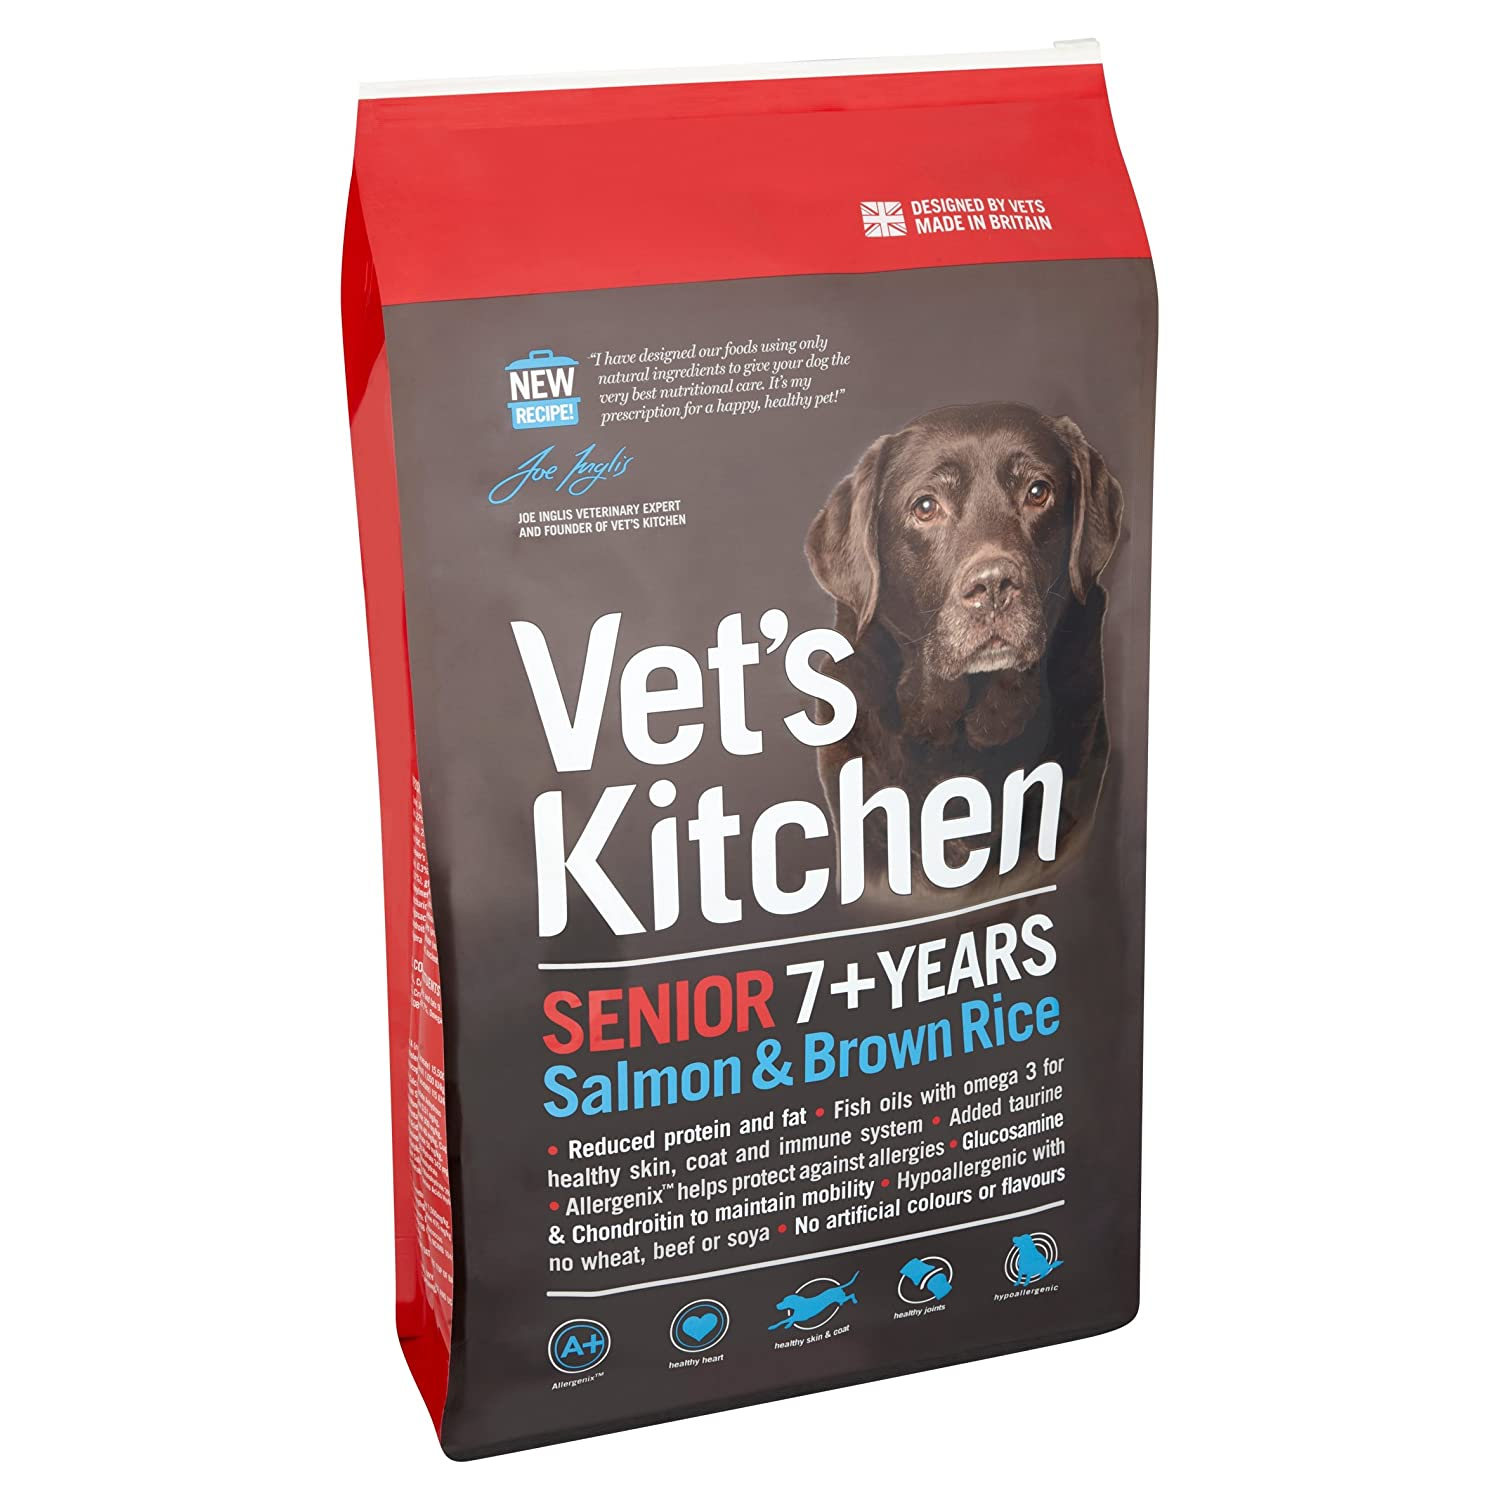 Elegant Vetu0027s Kitchen Salmon And Brown Rice Senior Complete Dog Food 7.5kg:  Amazon.co.uk: Pet Supplies Design Inspirations